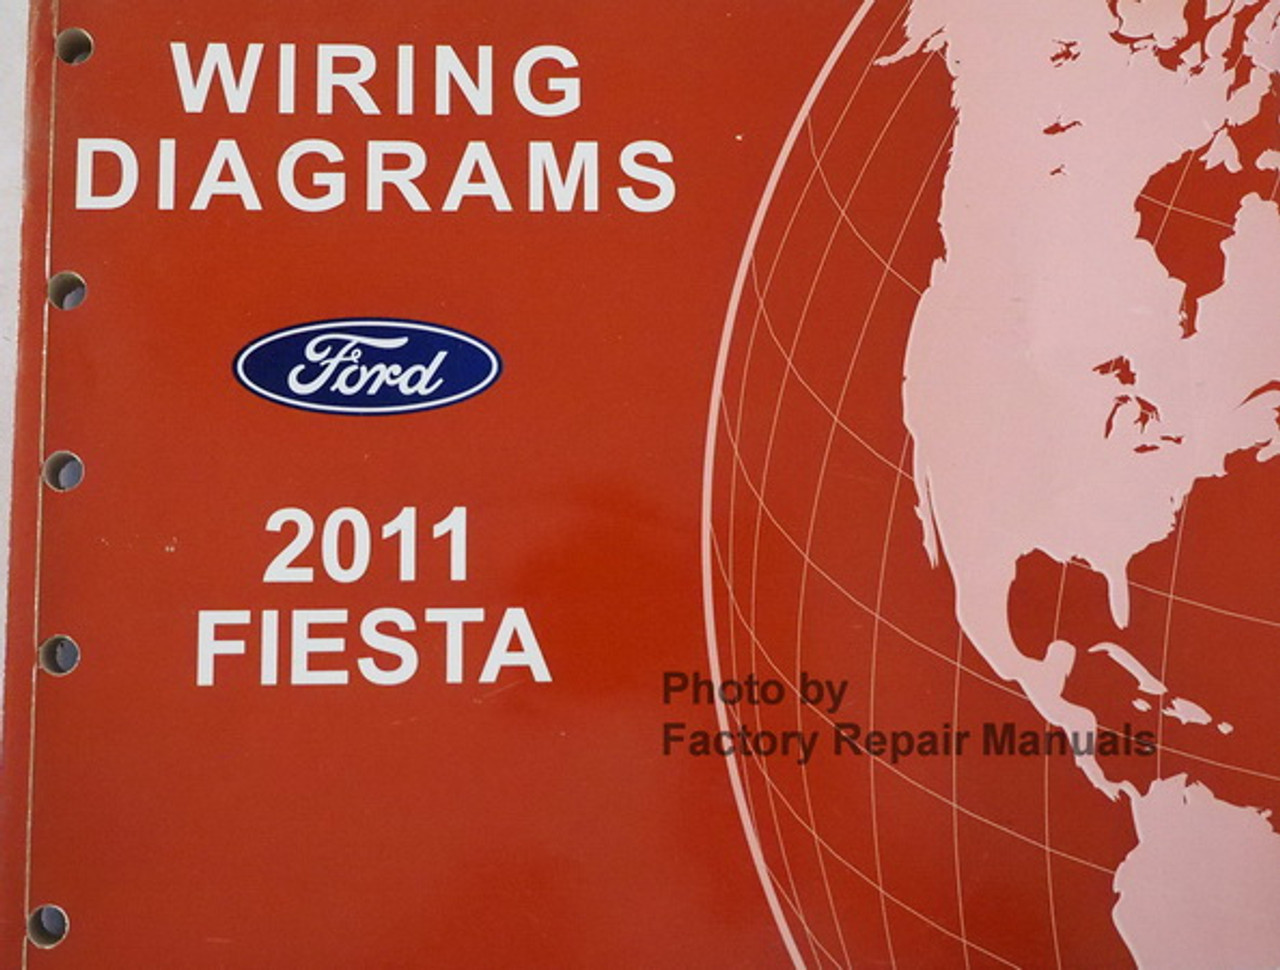 2011 ford fiesta electrical wiring diagrams original factory manual -  factory repair manuals  factory repair manuals